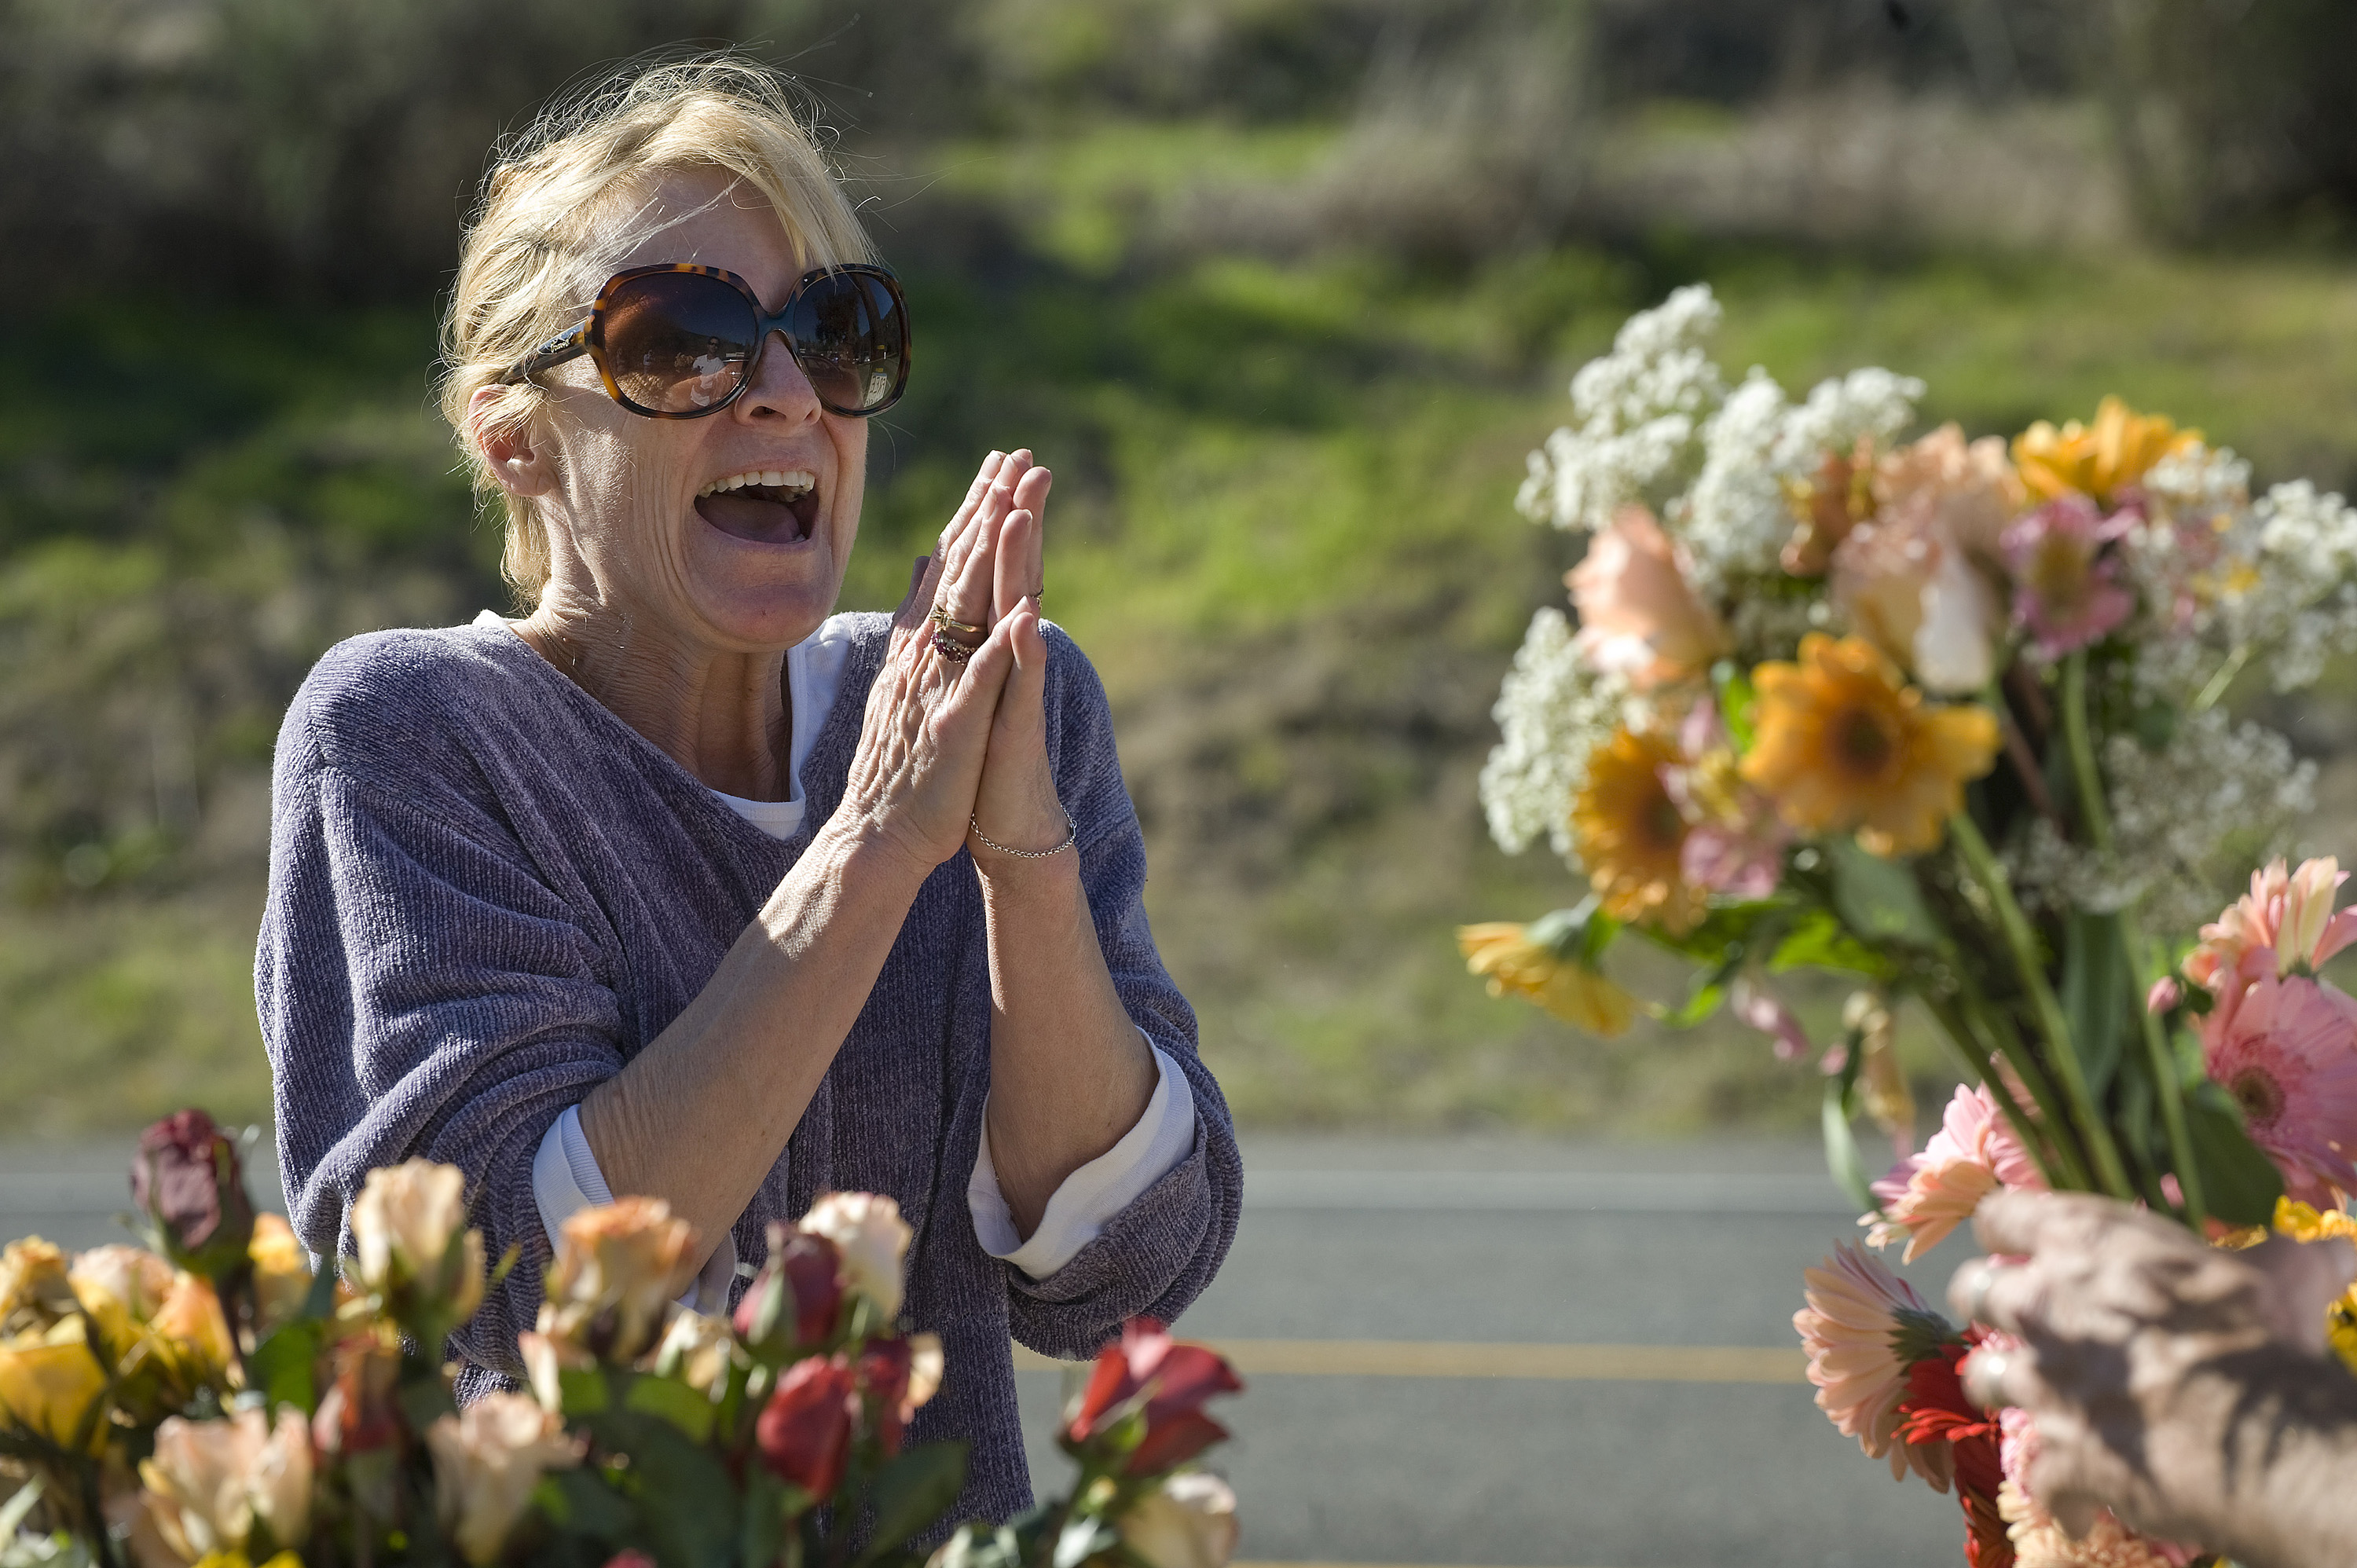 'Free flowers, what a treat,' exclaimed Melissa Bellano of Laguna Beach, California, after receiving the flowers from Shaun Kieran on Laguna Canyon Ro...